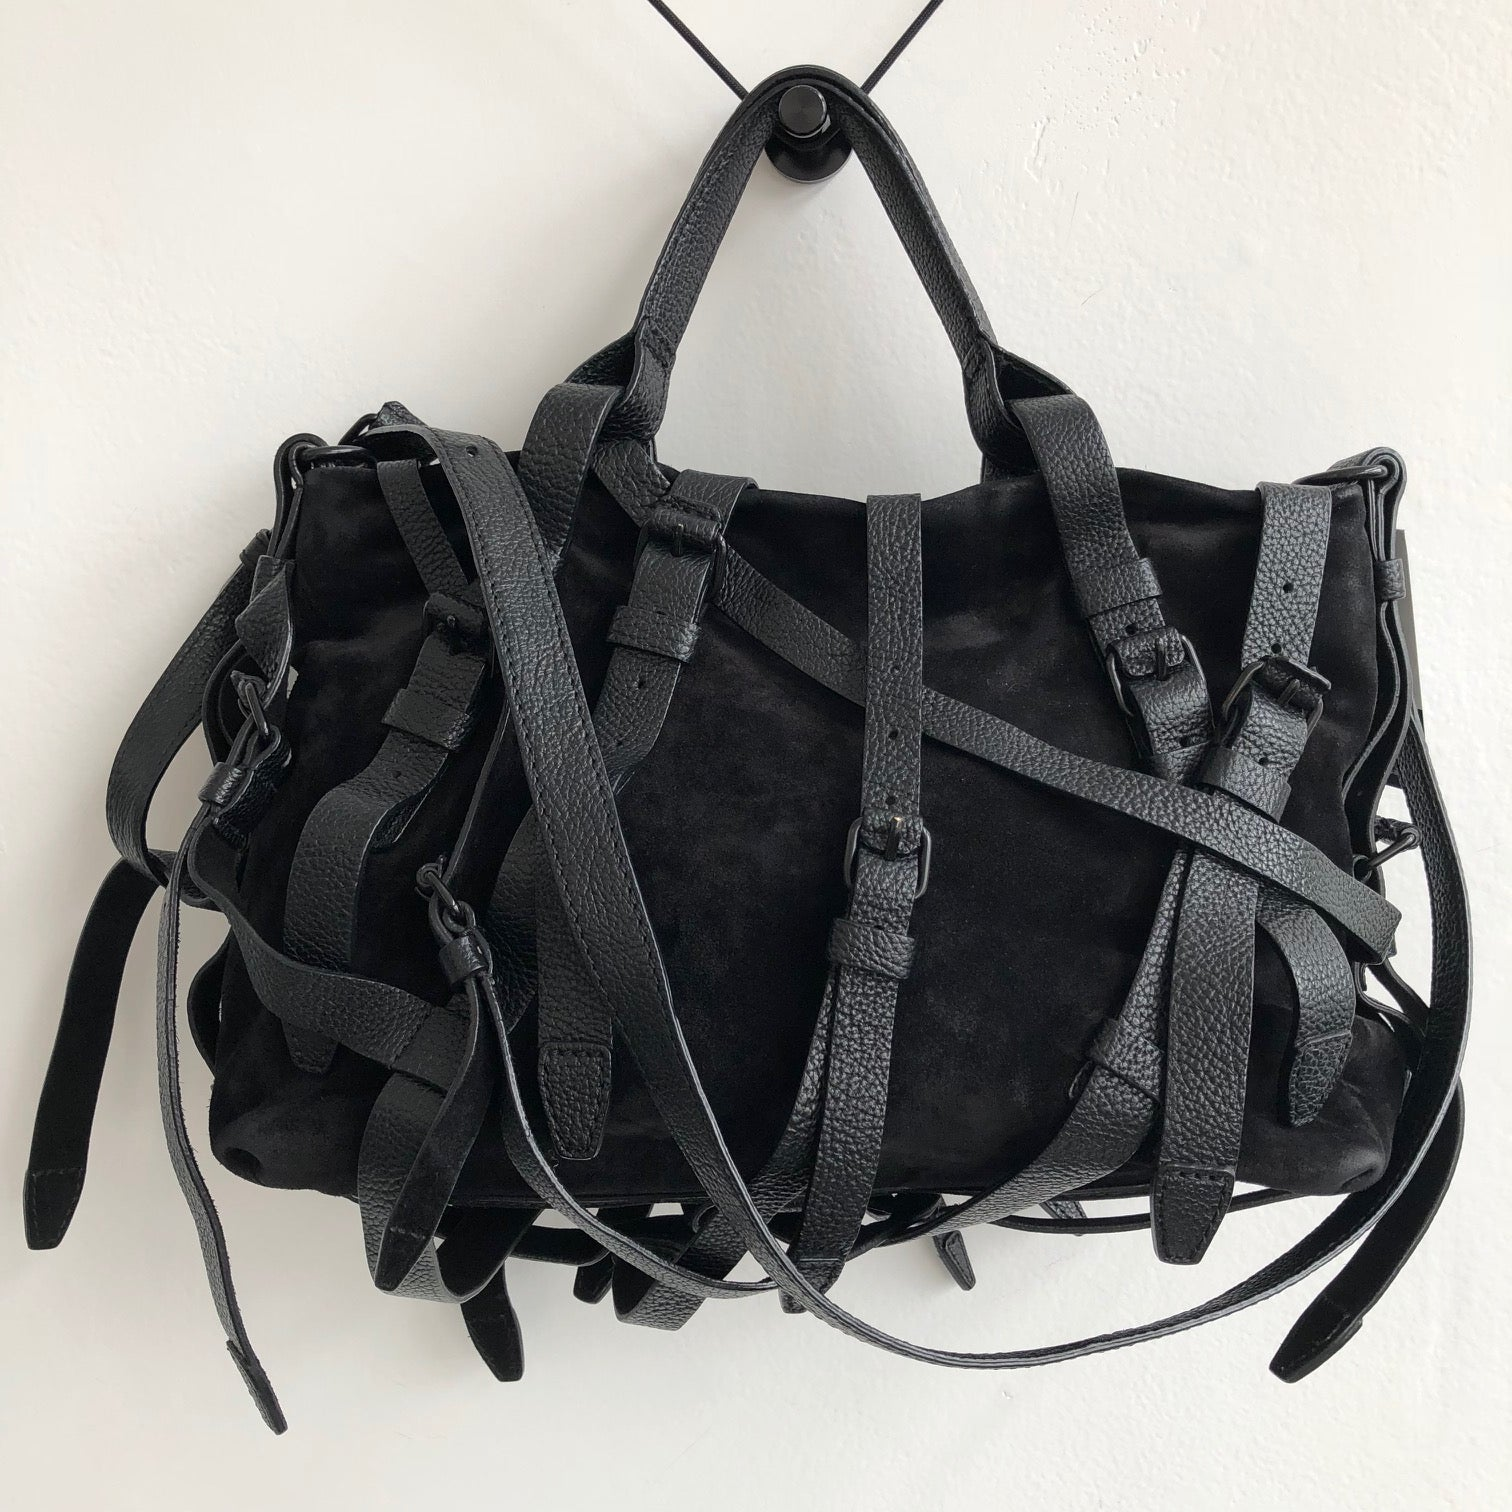 Alexander Wang Black Buckle Kirsten Crossbody w/ dustbag